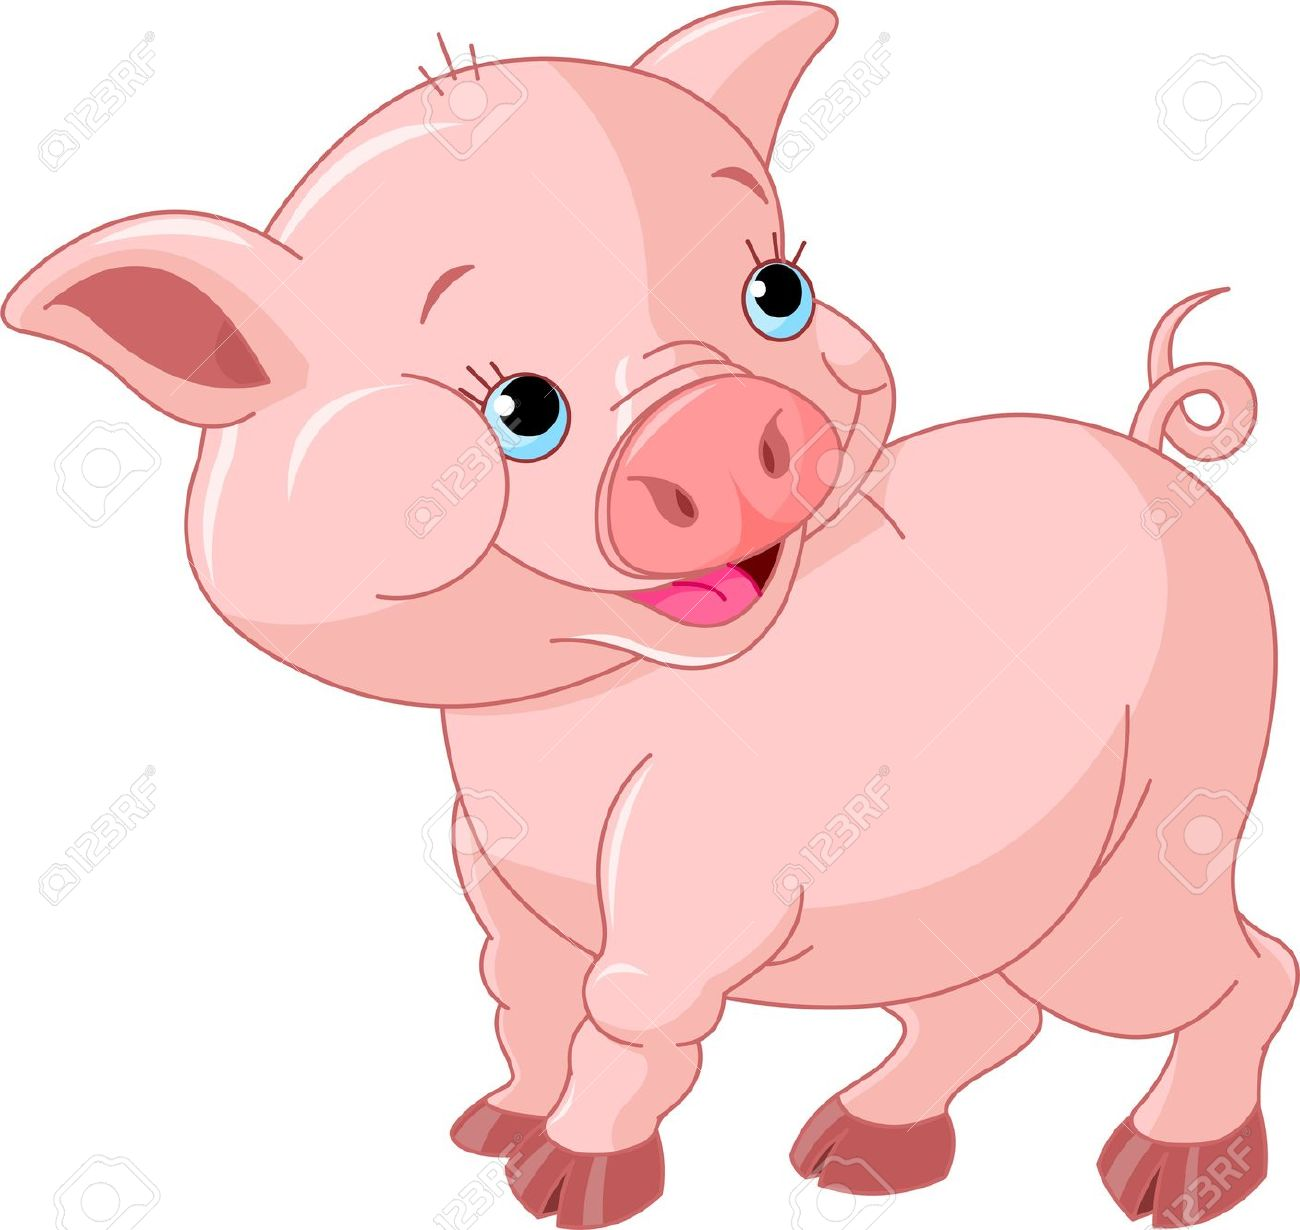 Smiling pig clipart.